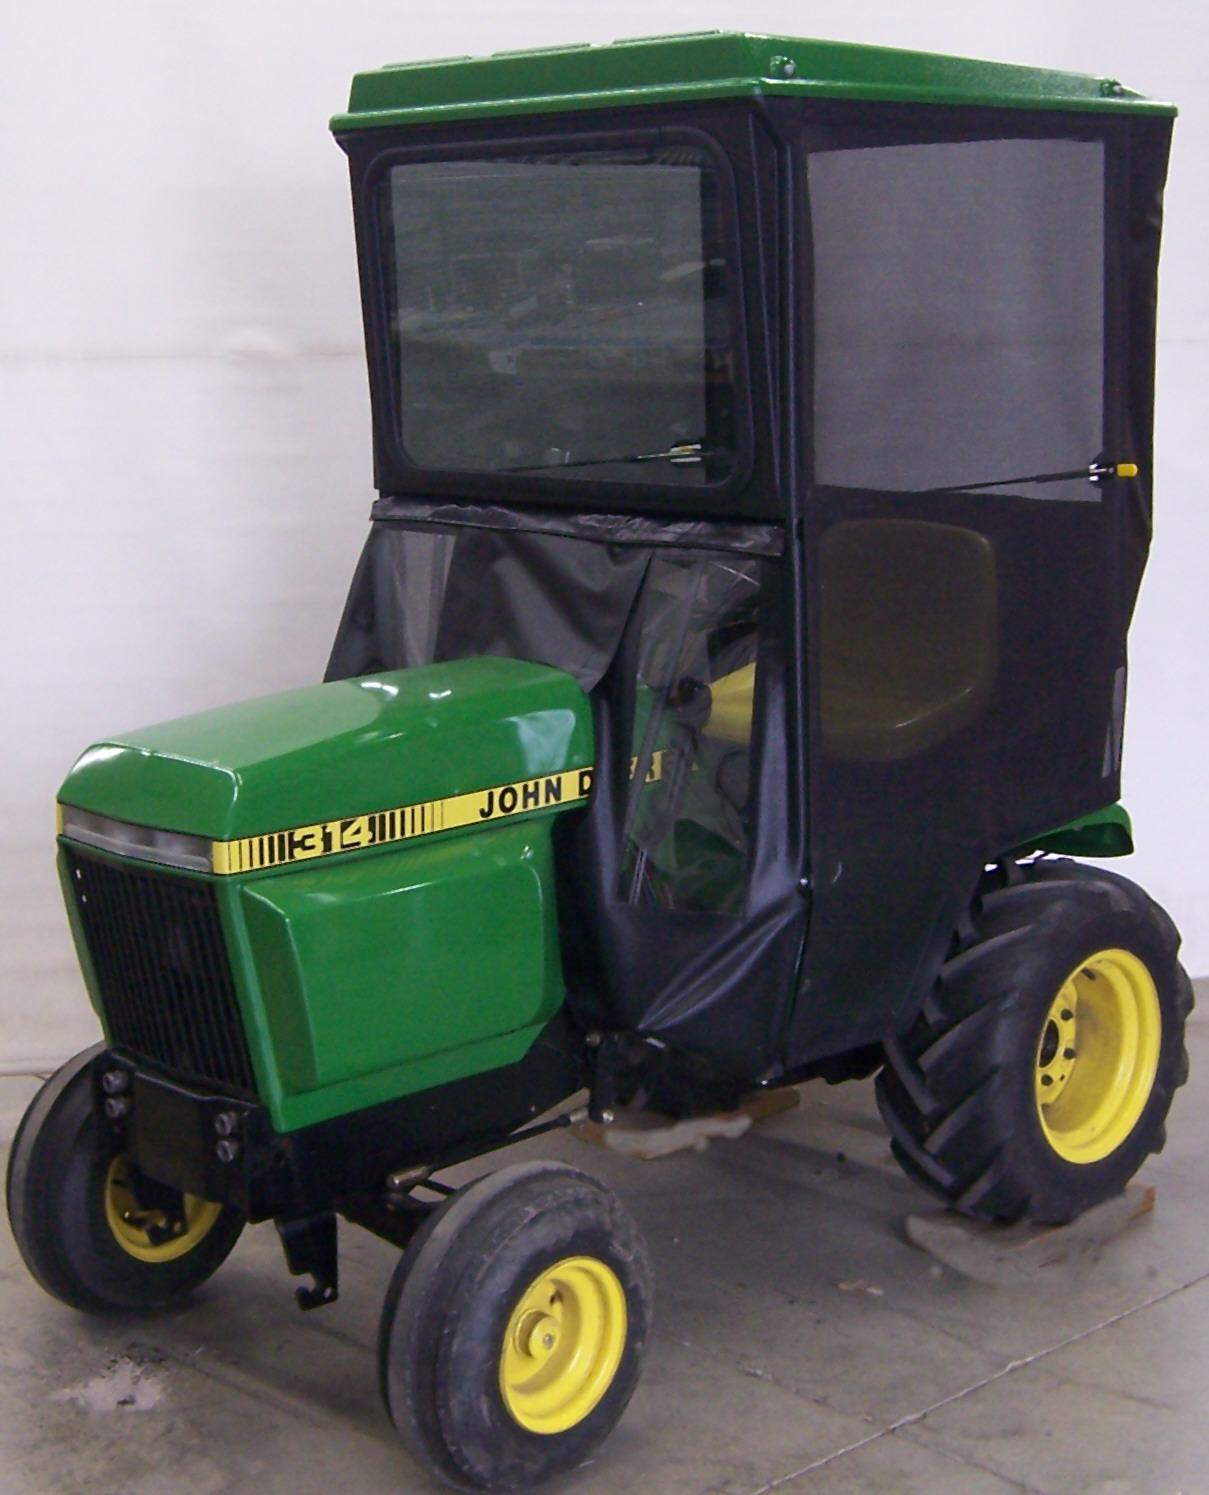 Original Tractor Cab Hard Top Cab Screen Door Kit to Fit John Deere X700 Signature Series